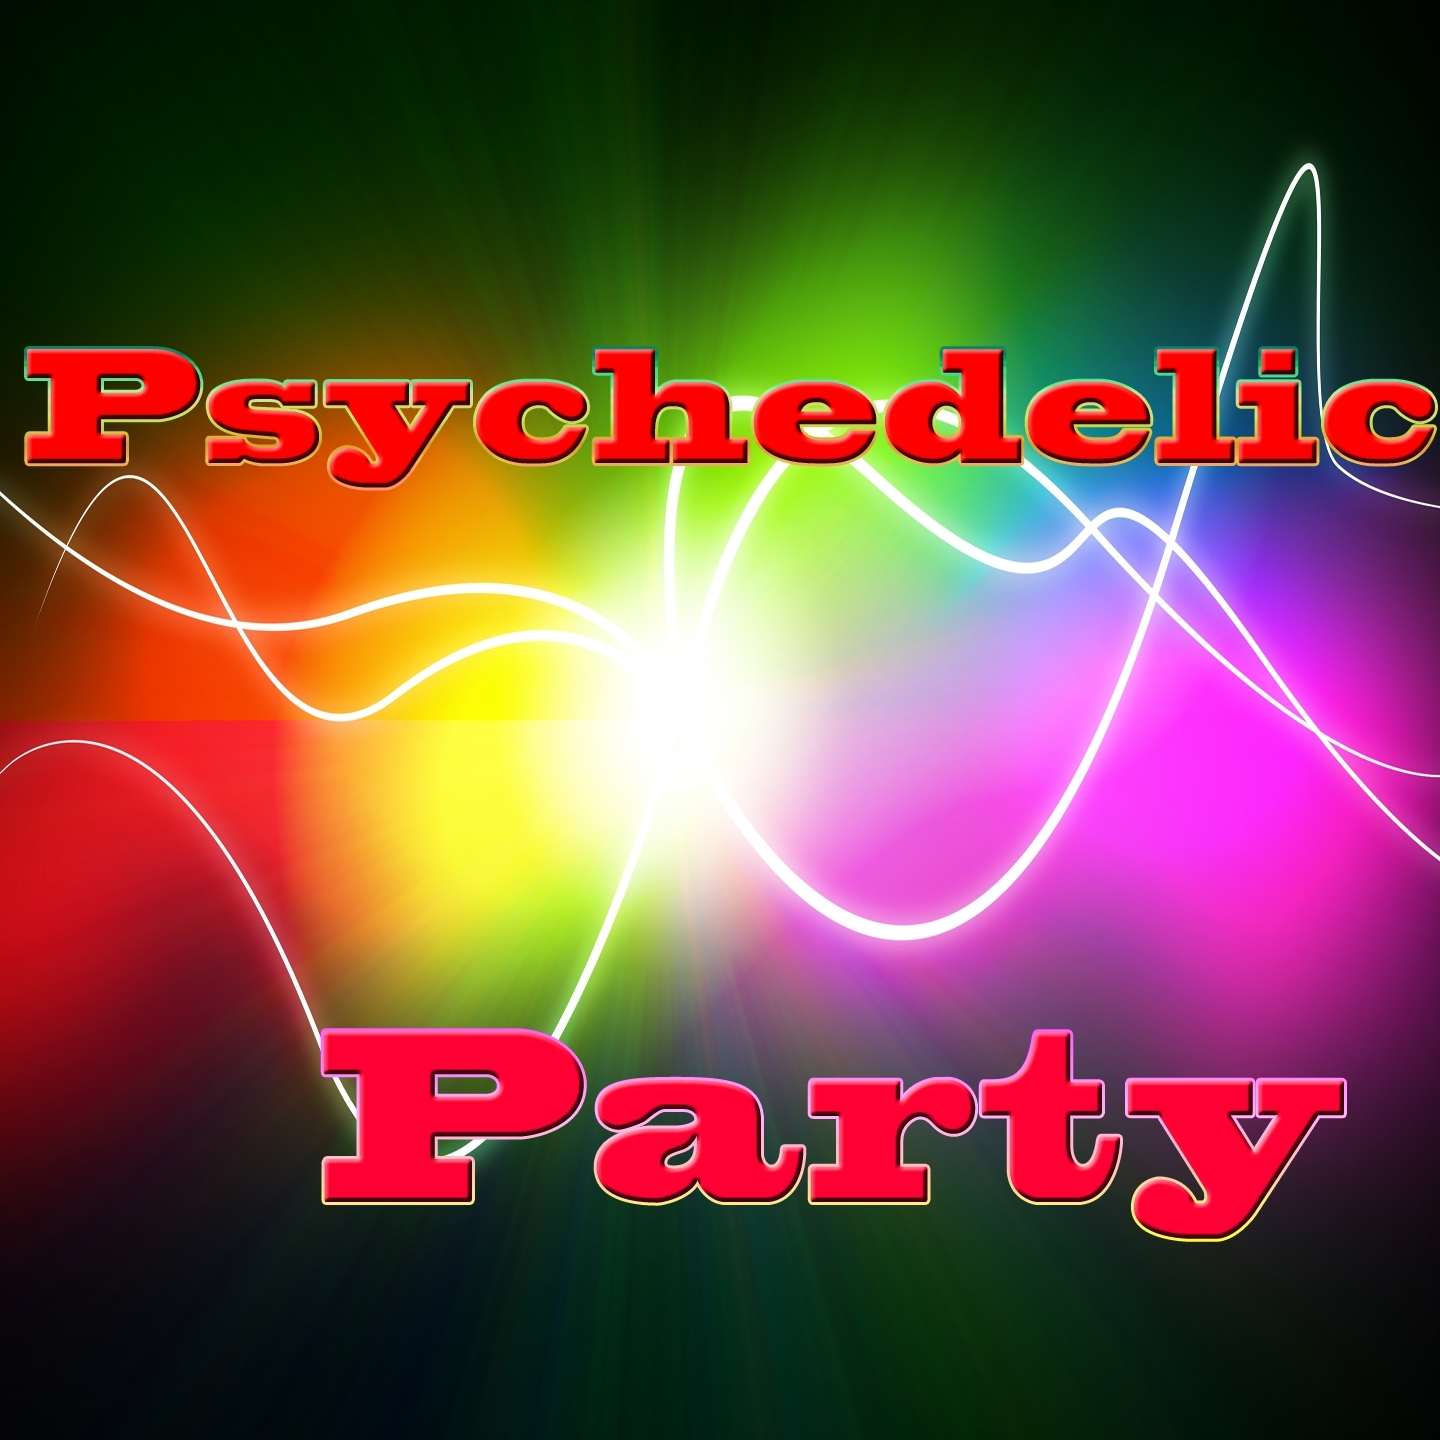 The Psychedelic Party